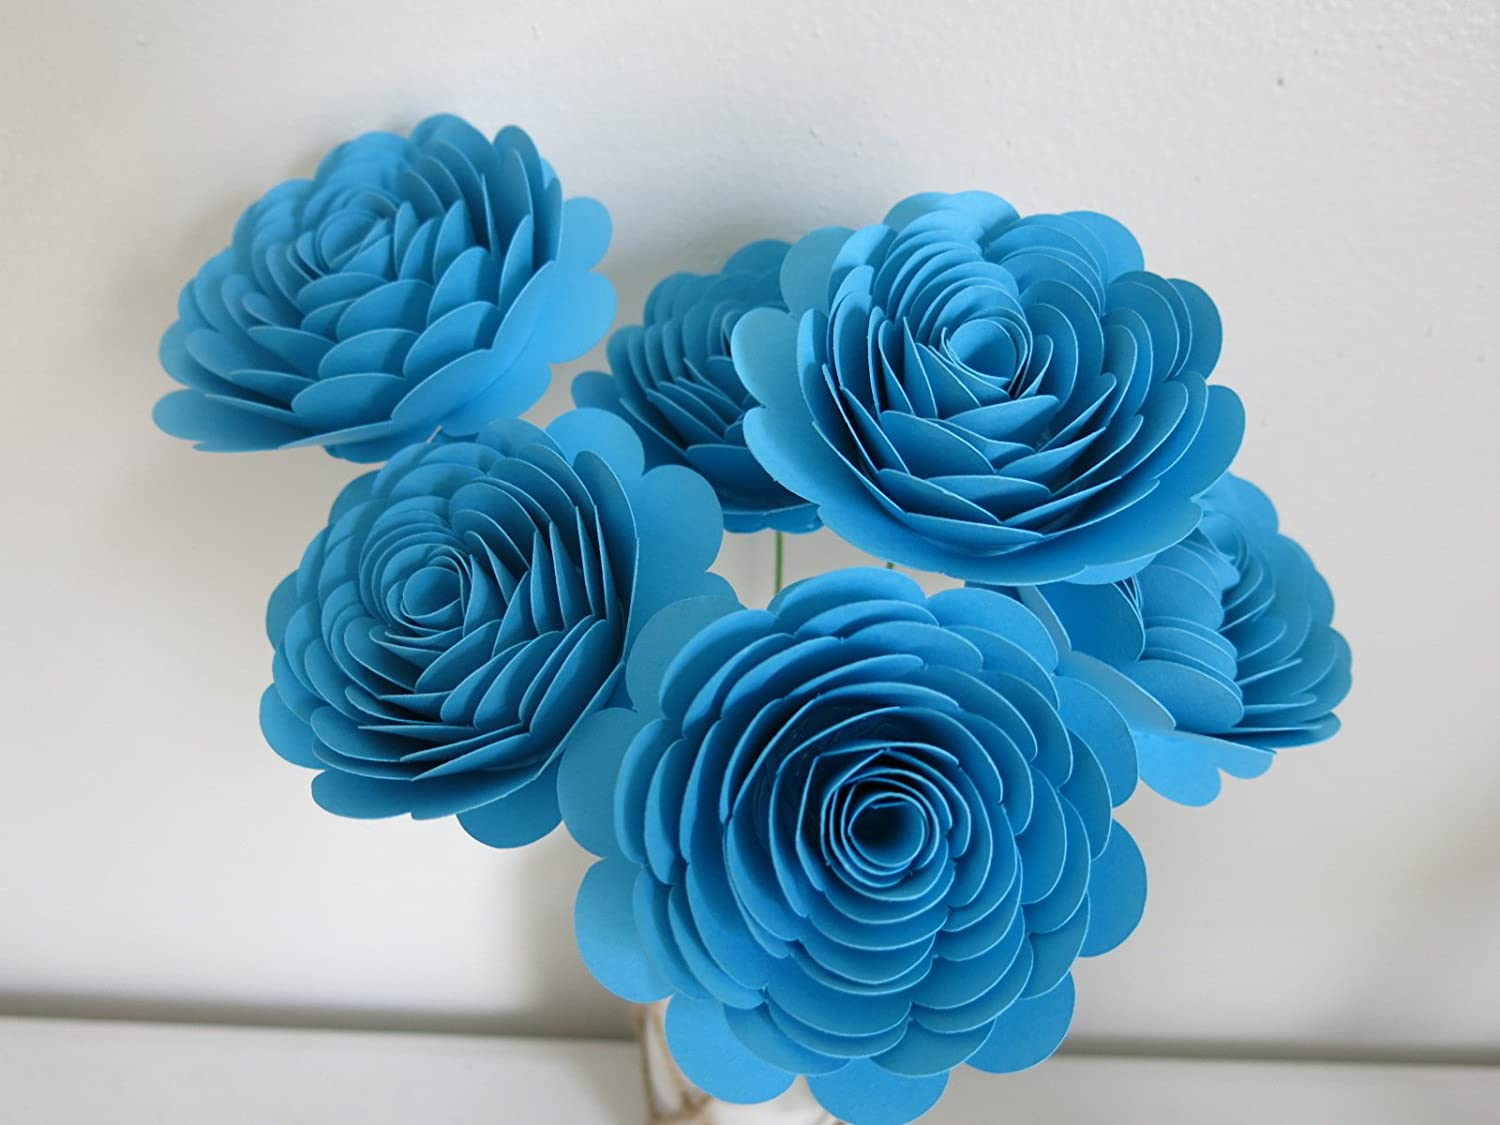 Amazon 6 aqua blue large quilled roses on stems 3 inch blooms amazon 6 aqua blue large quilled roses on stems 3 inch blooms turquoise color paper flowers handmade izmirmasajfo